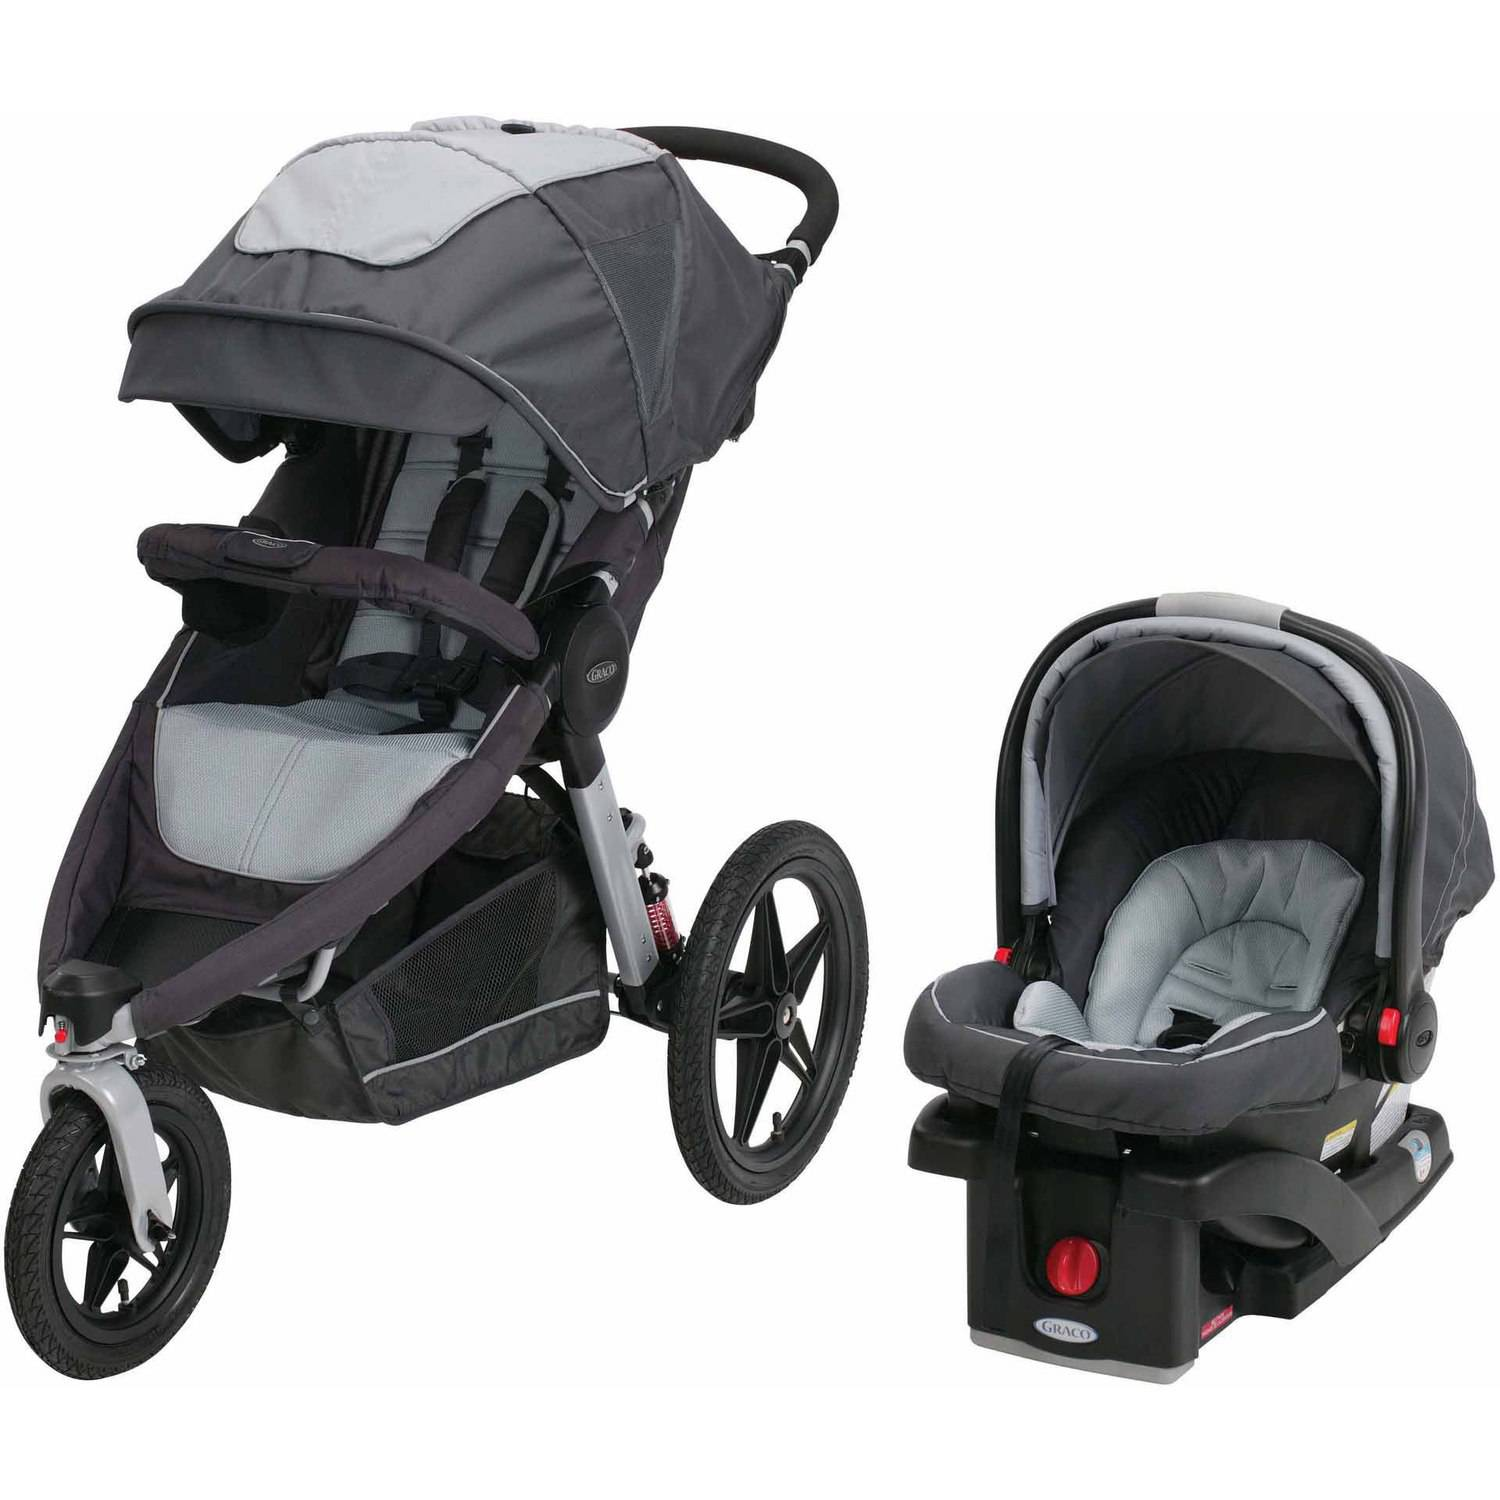 Graco Relay Click Connect Jogging Stroller Infant Travel System by Graco